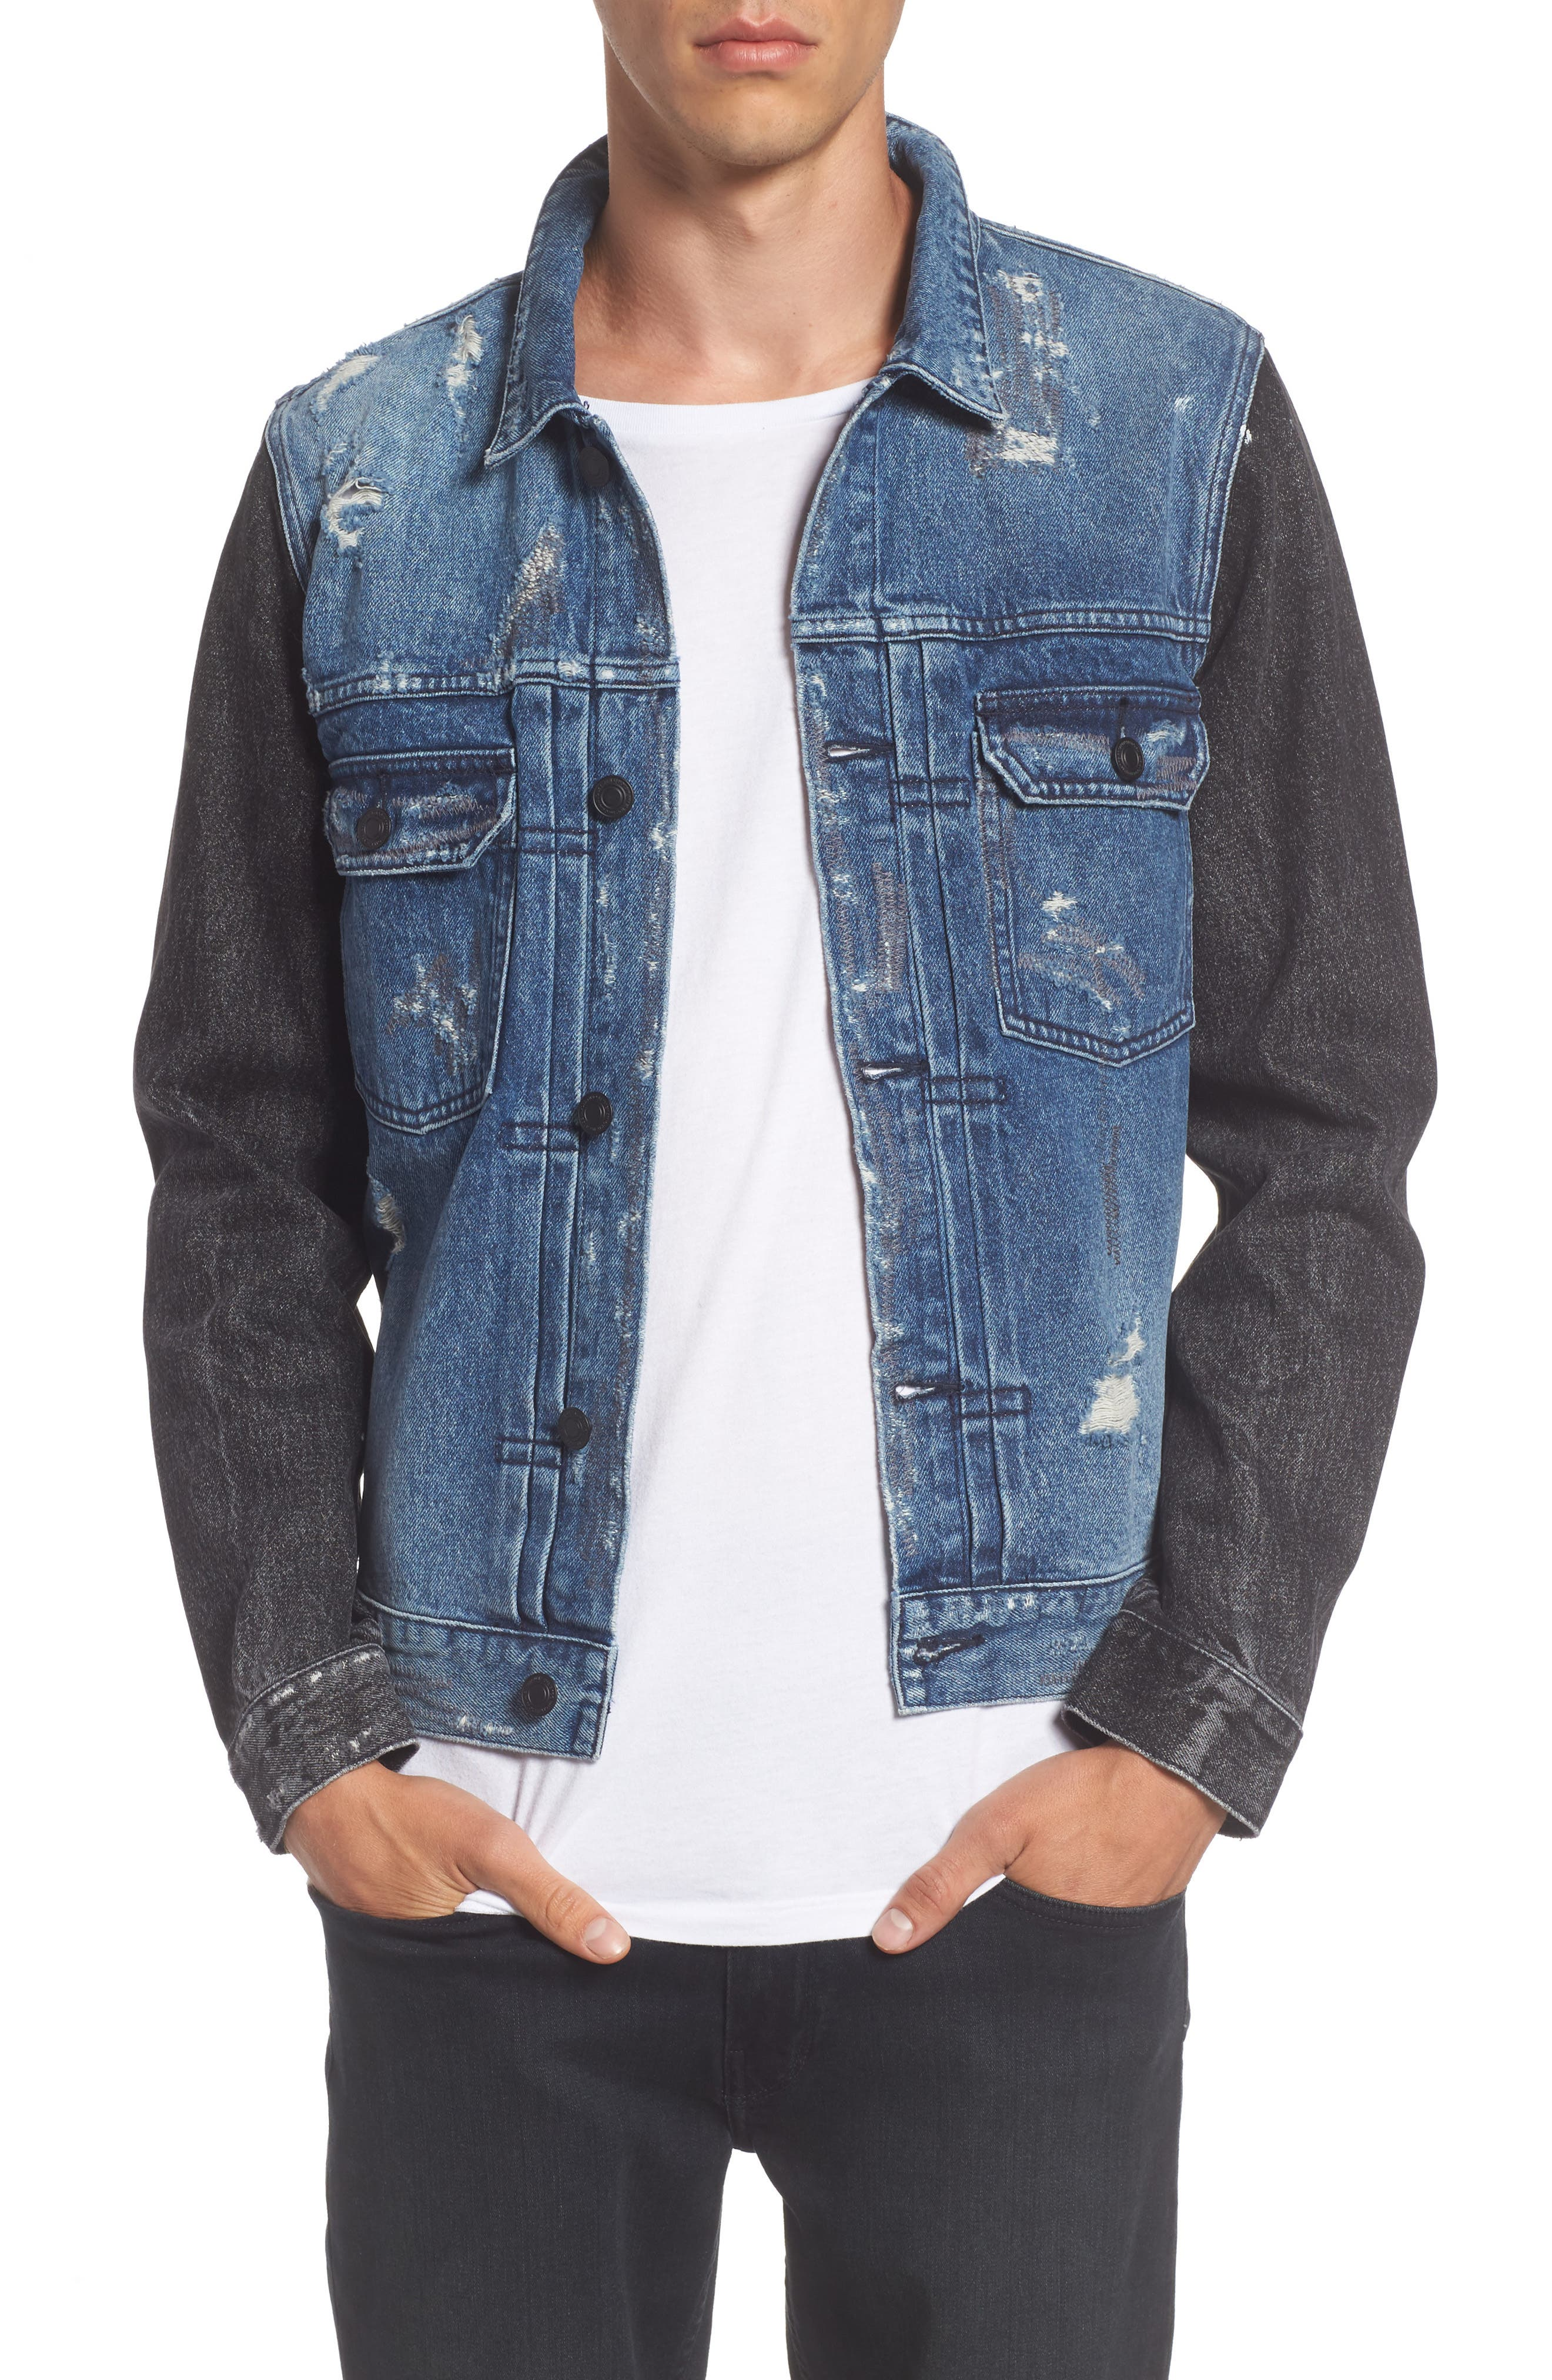 Trash Denim Jacket,                         Main,                         color, 460